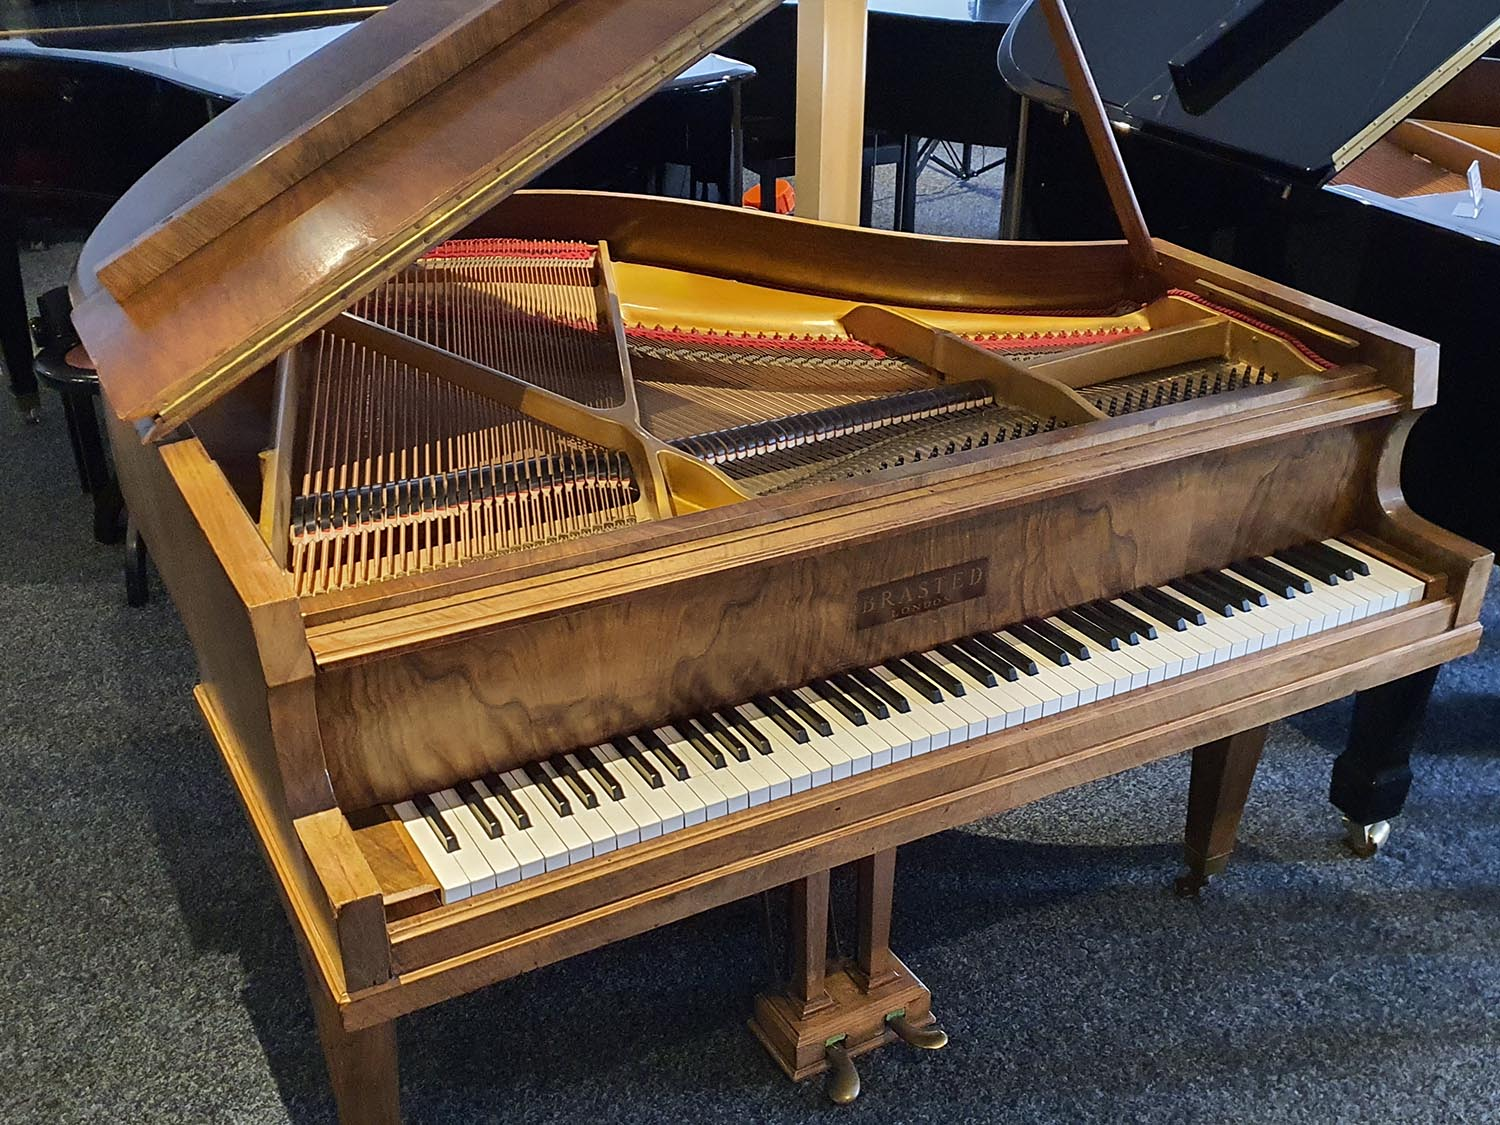 Sloot Pianoservice: Brasted 150